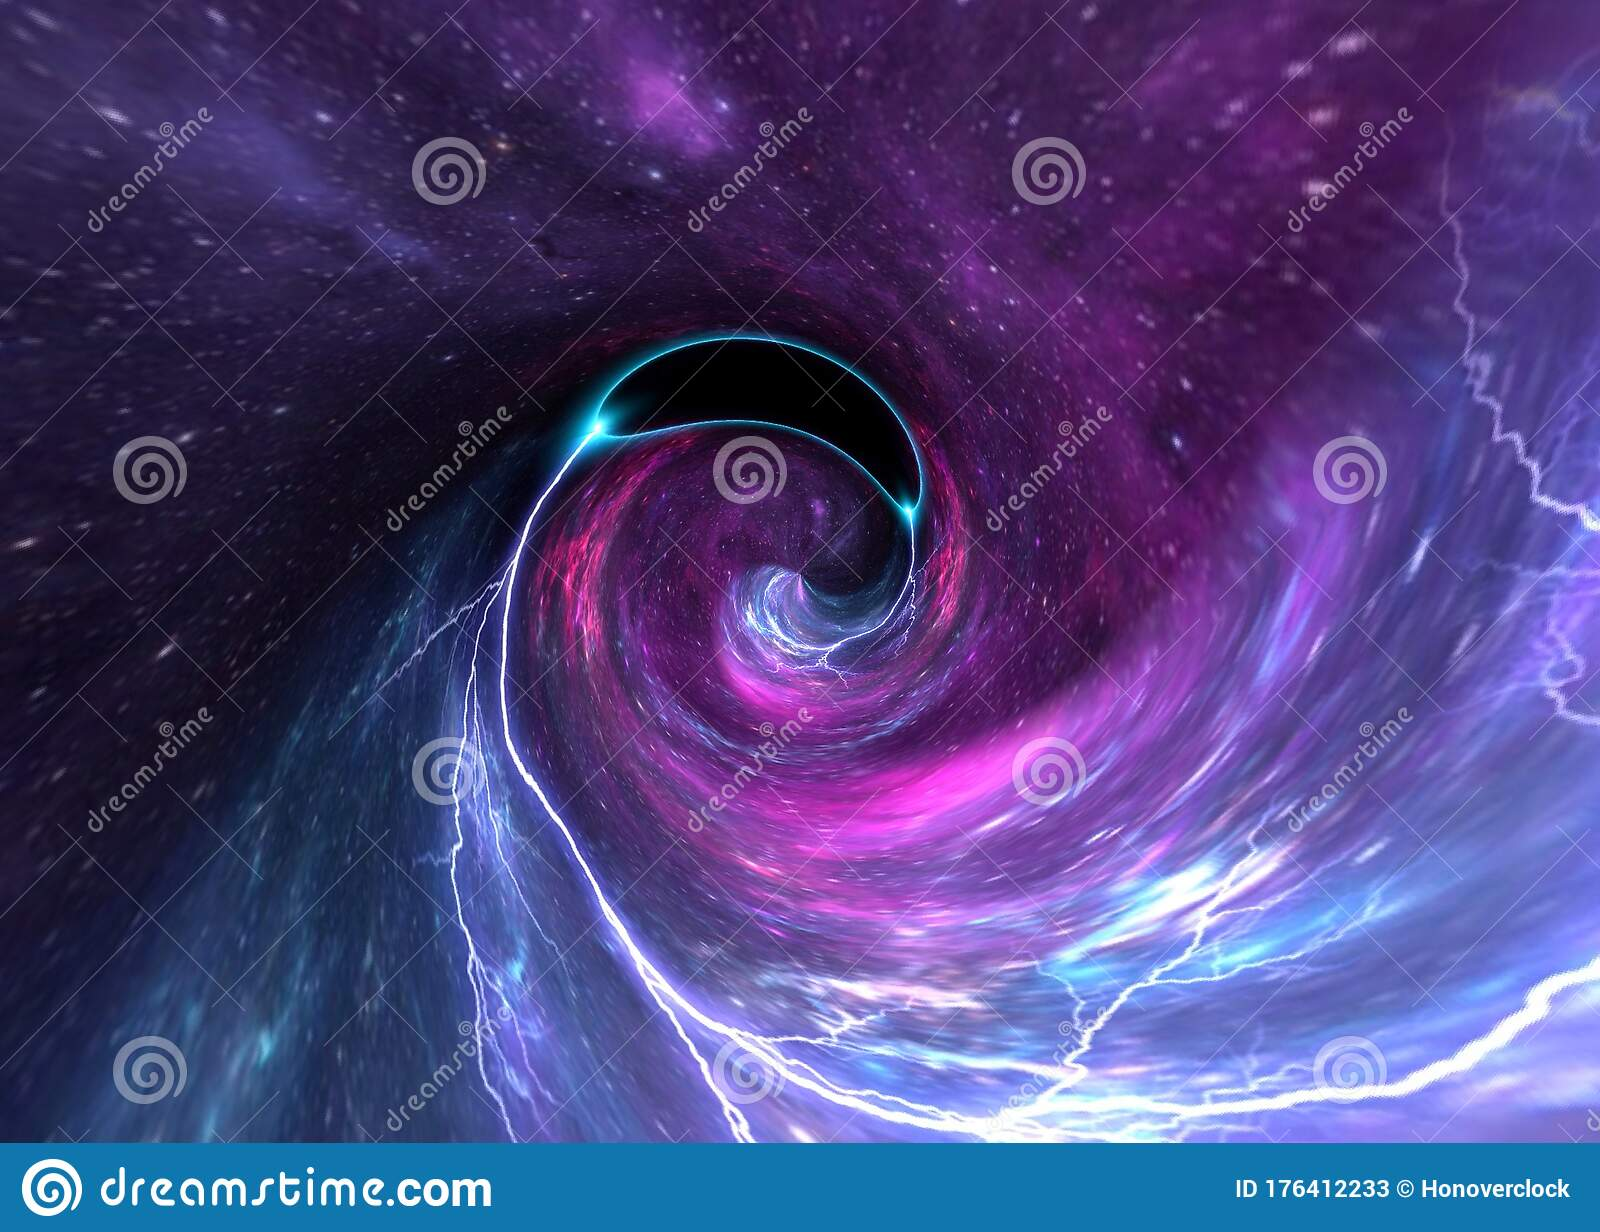 planets galaxy cosmos physical cosmology planets galaxy cosmos physical cosmology science fiction wallpaper background 176412233